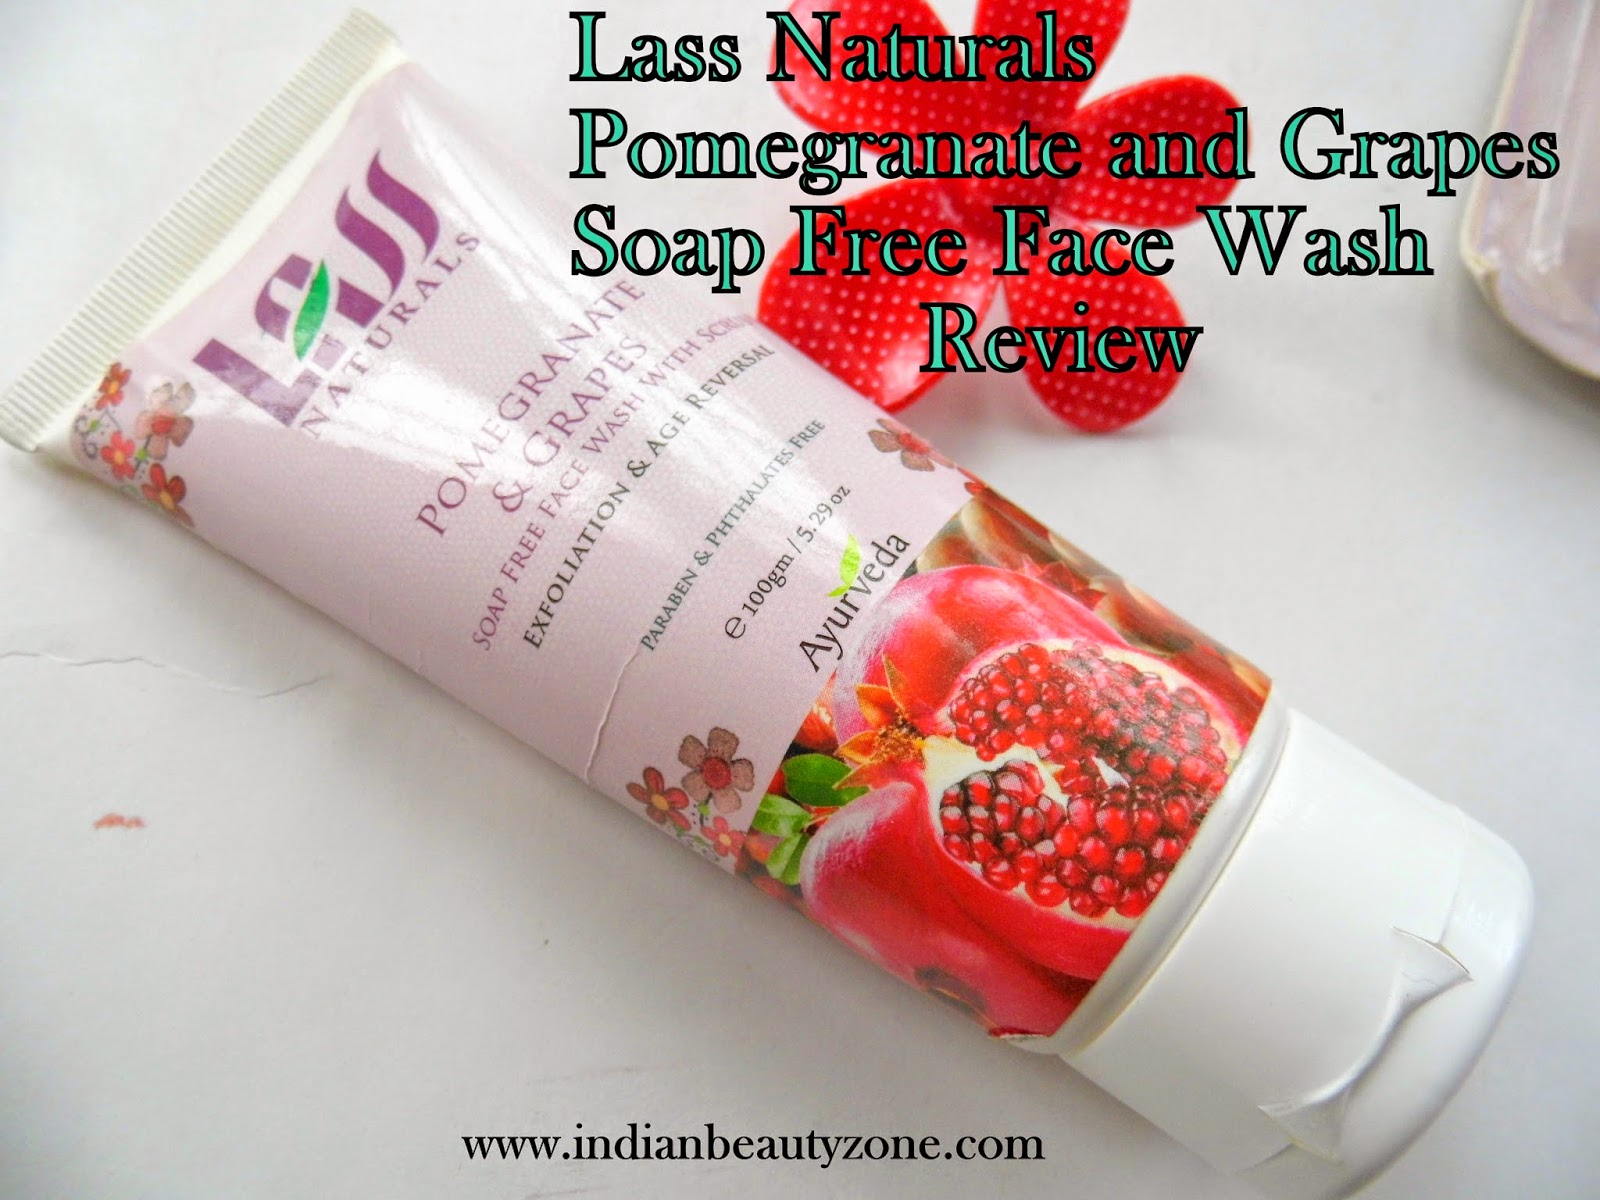 Anti aging face wash, soap free wash